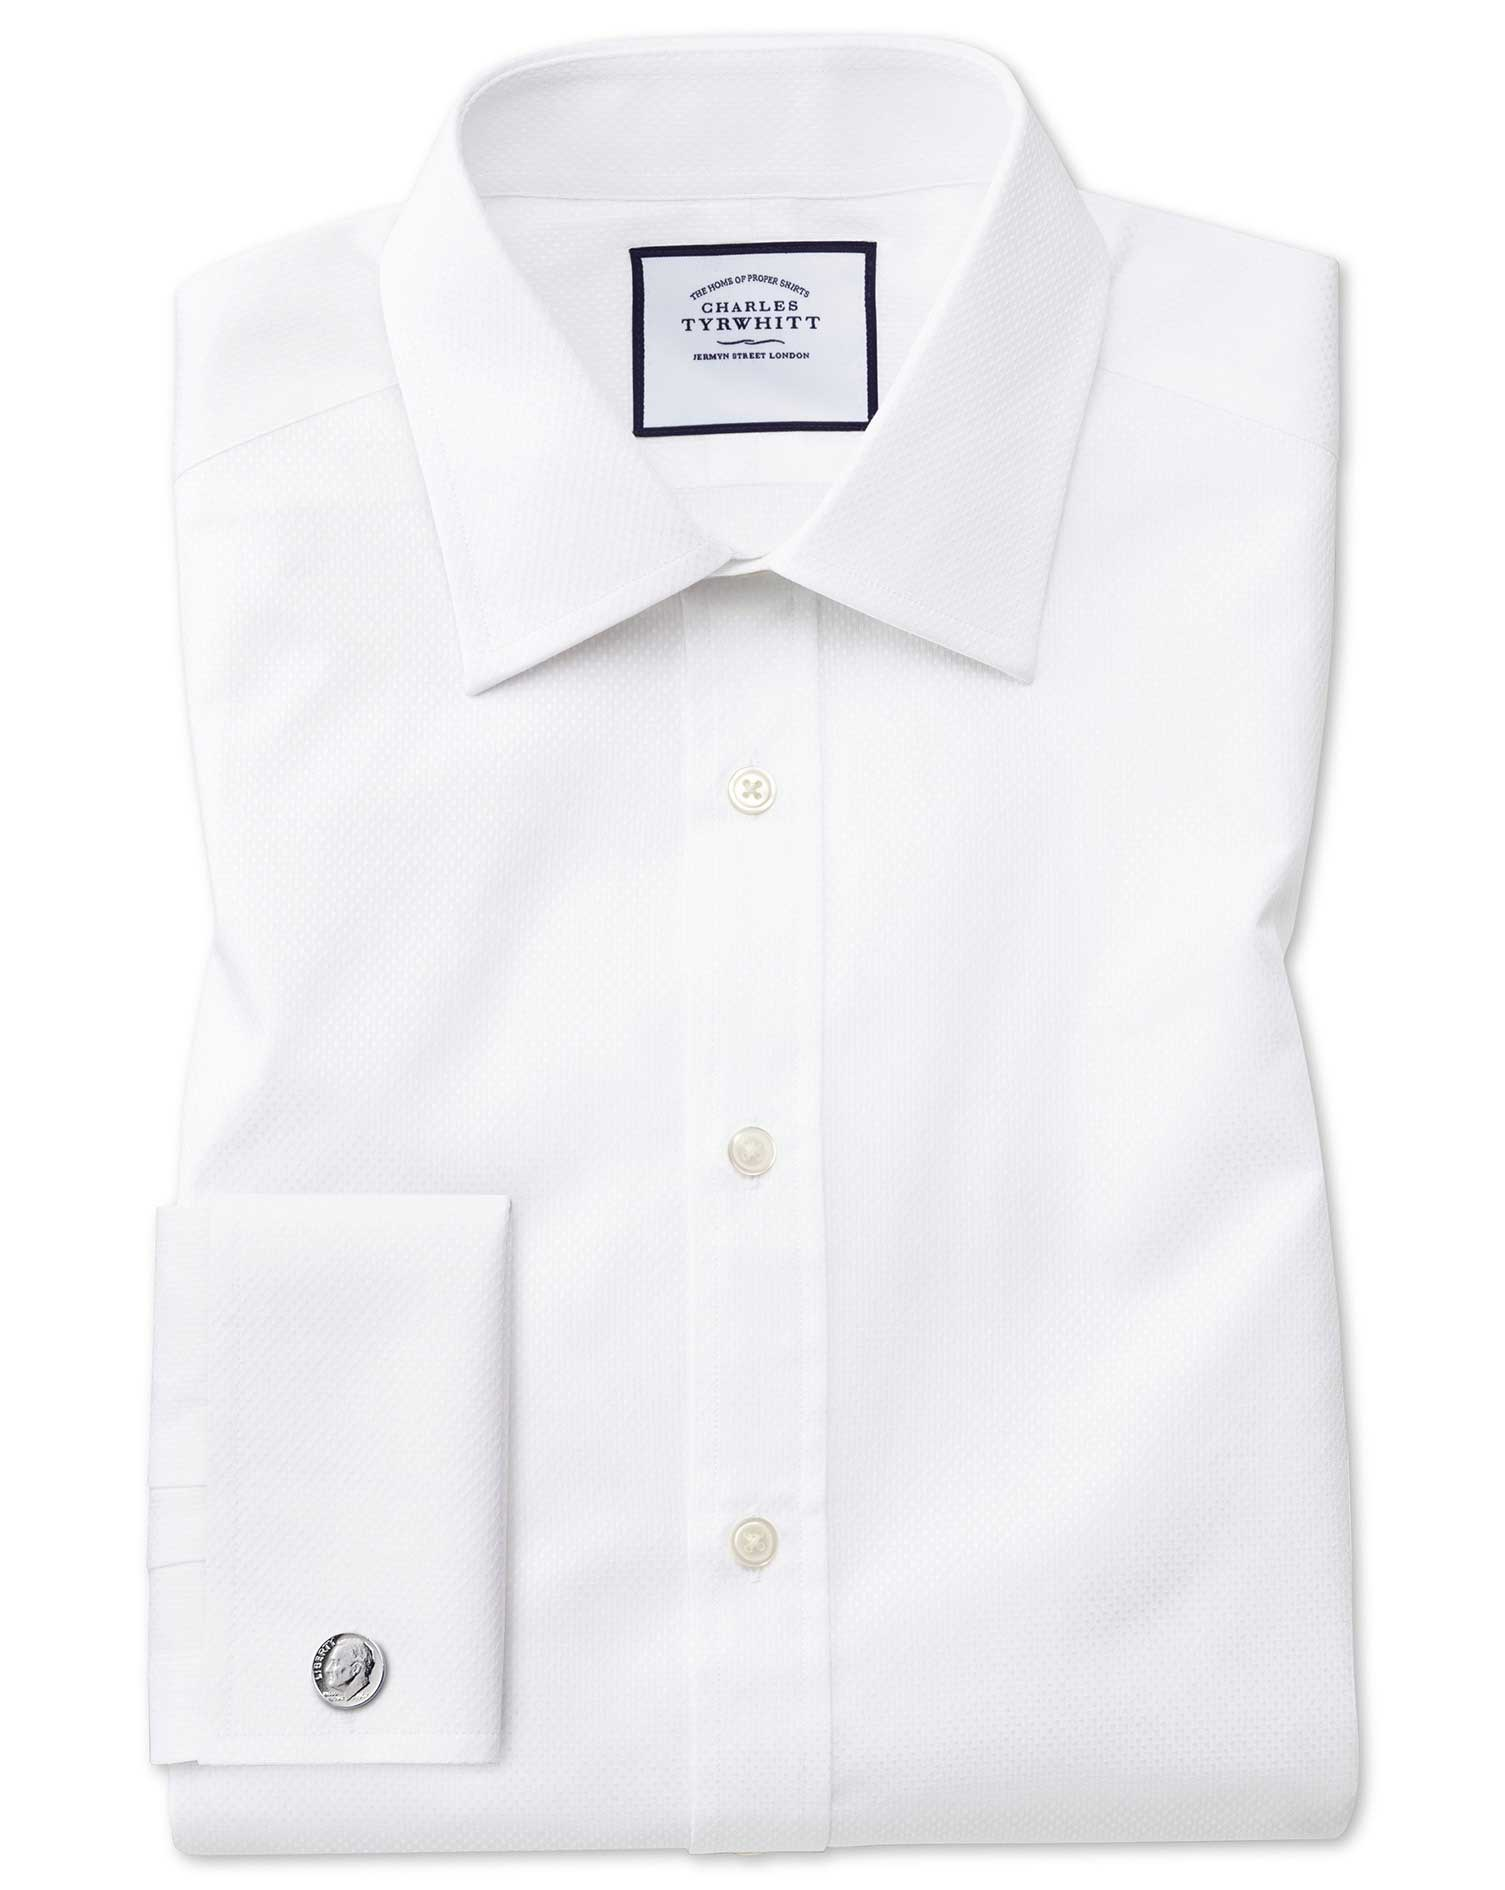 Extra Slim Fit White Cube Weave Egyptian Cotton Formal Shirt Single Cuff Size 16.5/36 by Charles Tyr